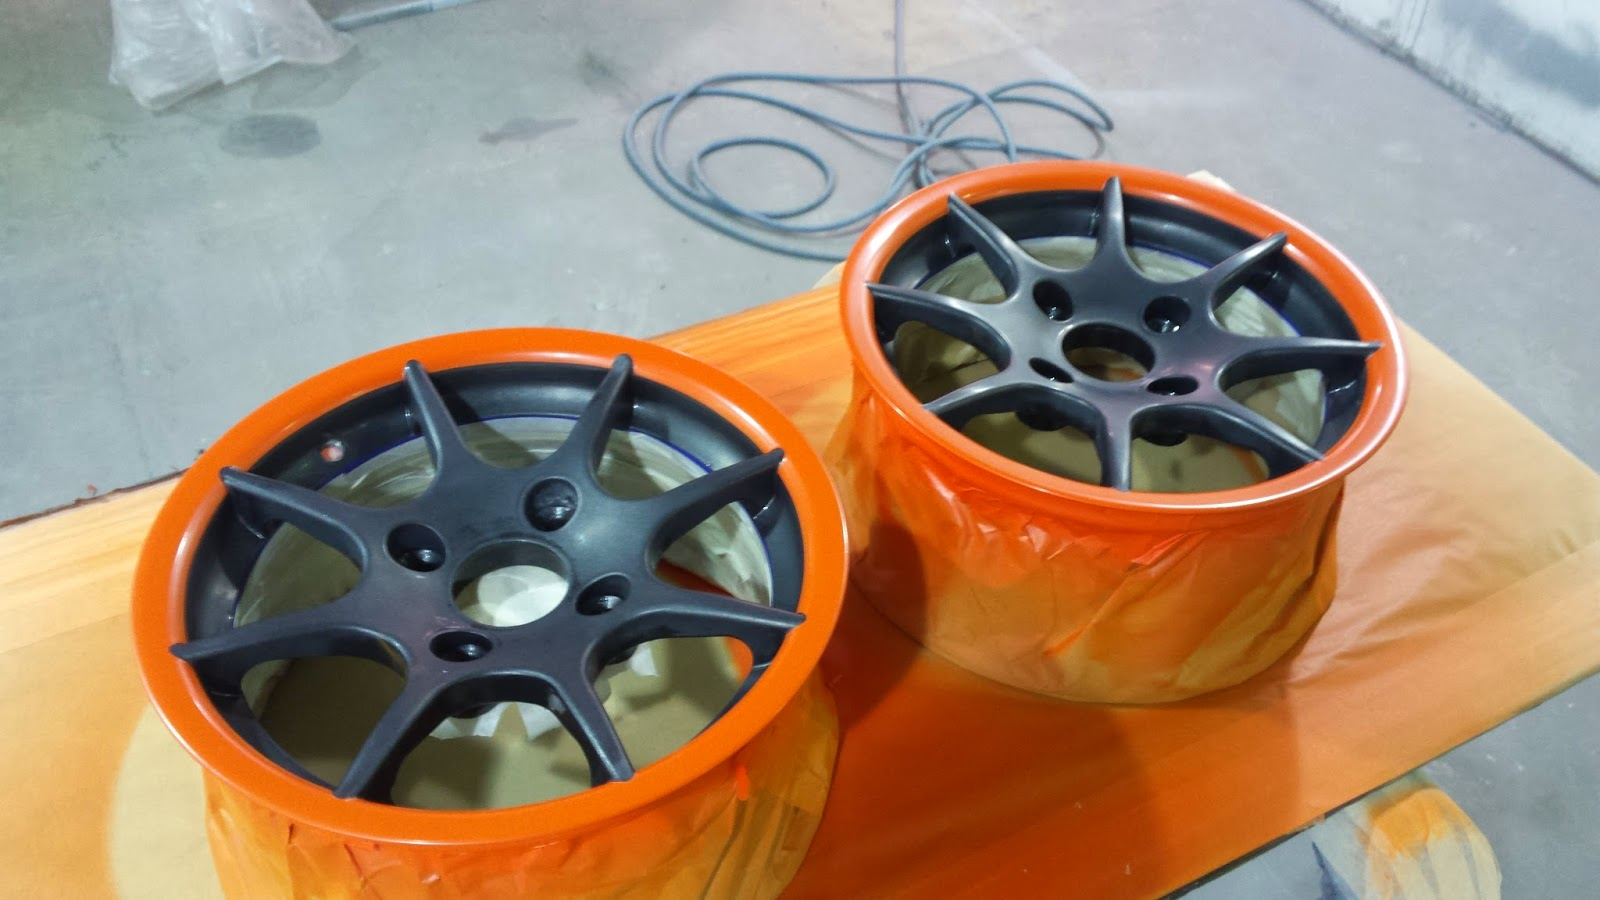 Two wheels painted with orange rims